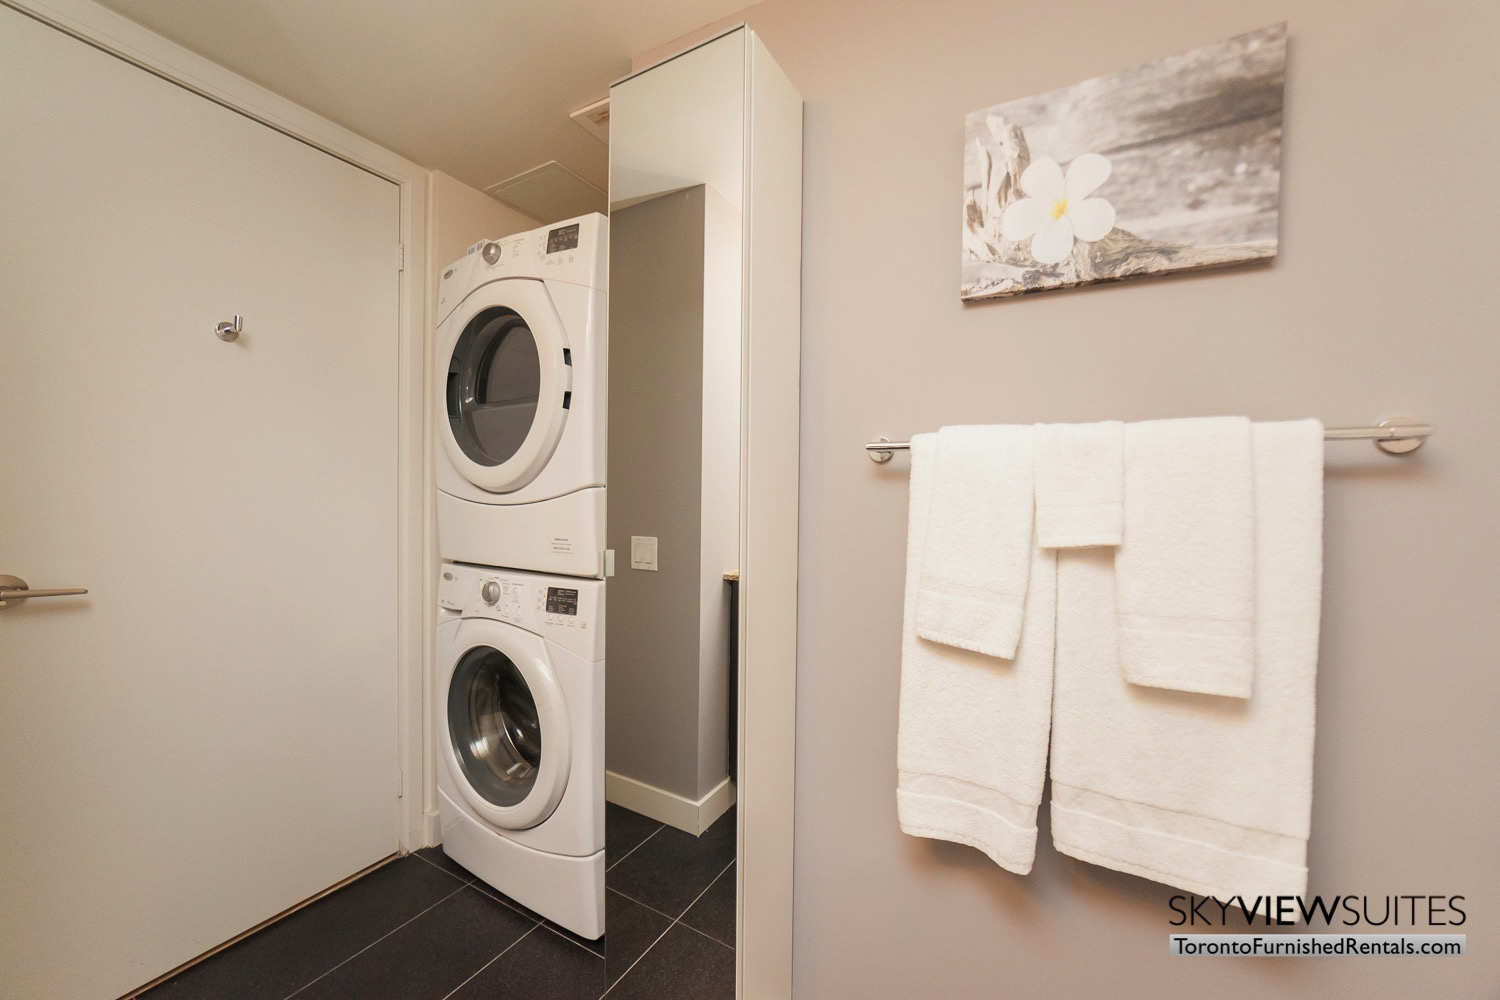 King west corporate rentals toronto washing machine